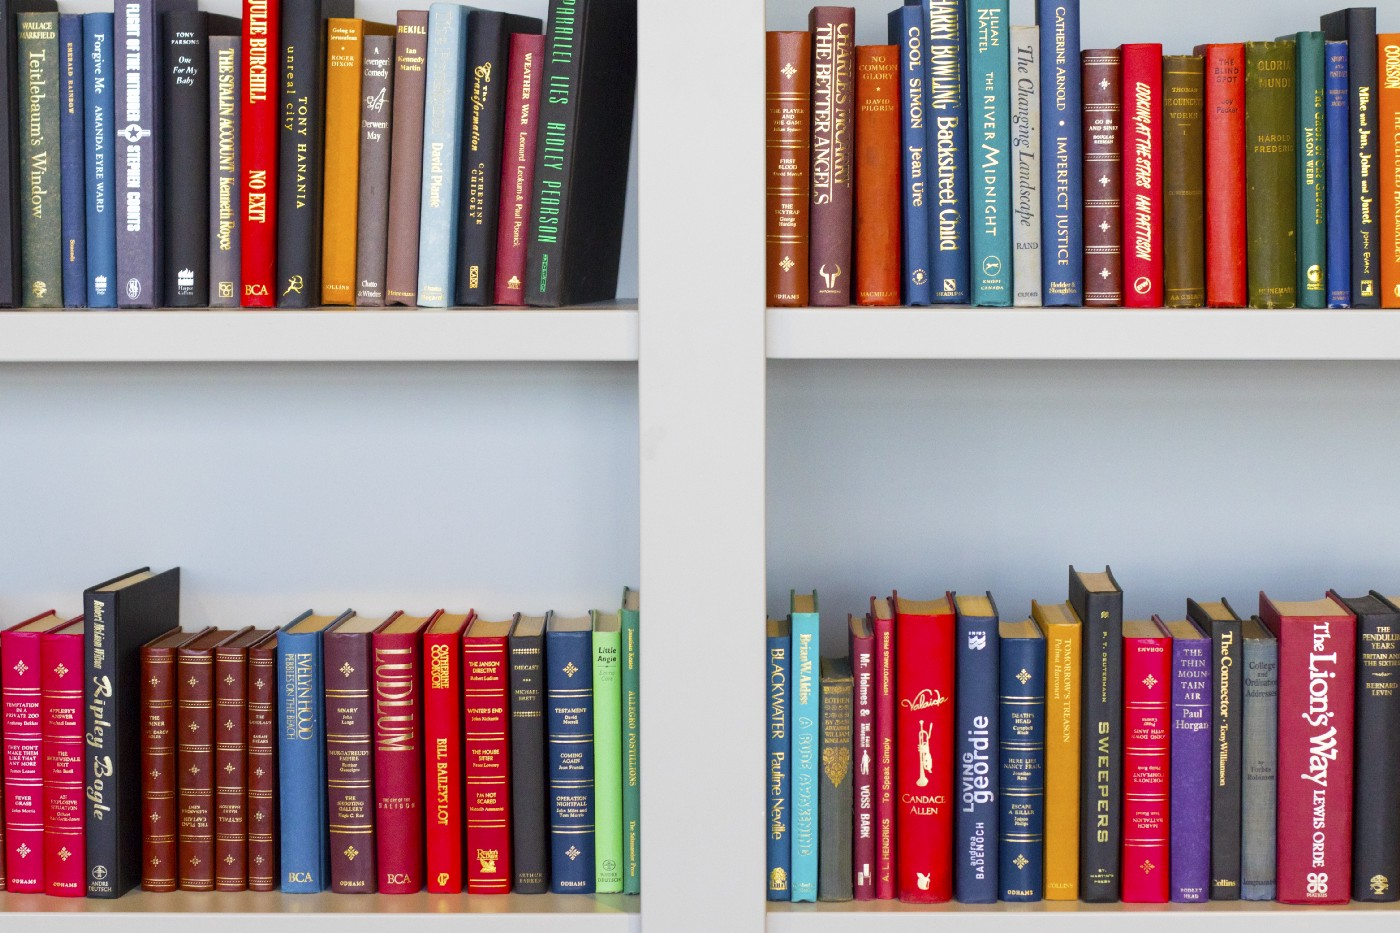 Books photo by Nick Fewings on Unsplash